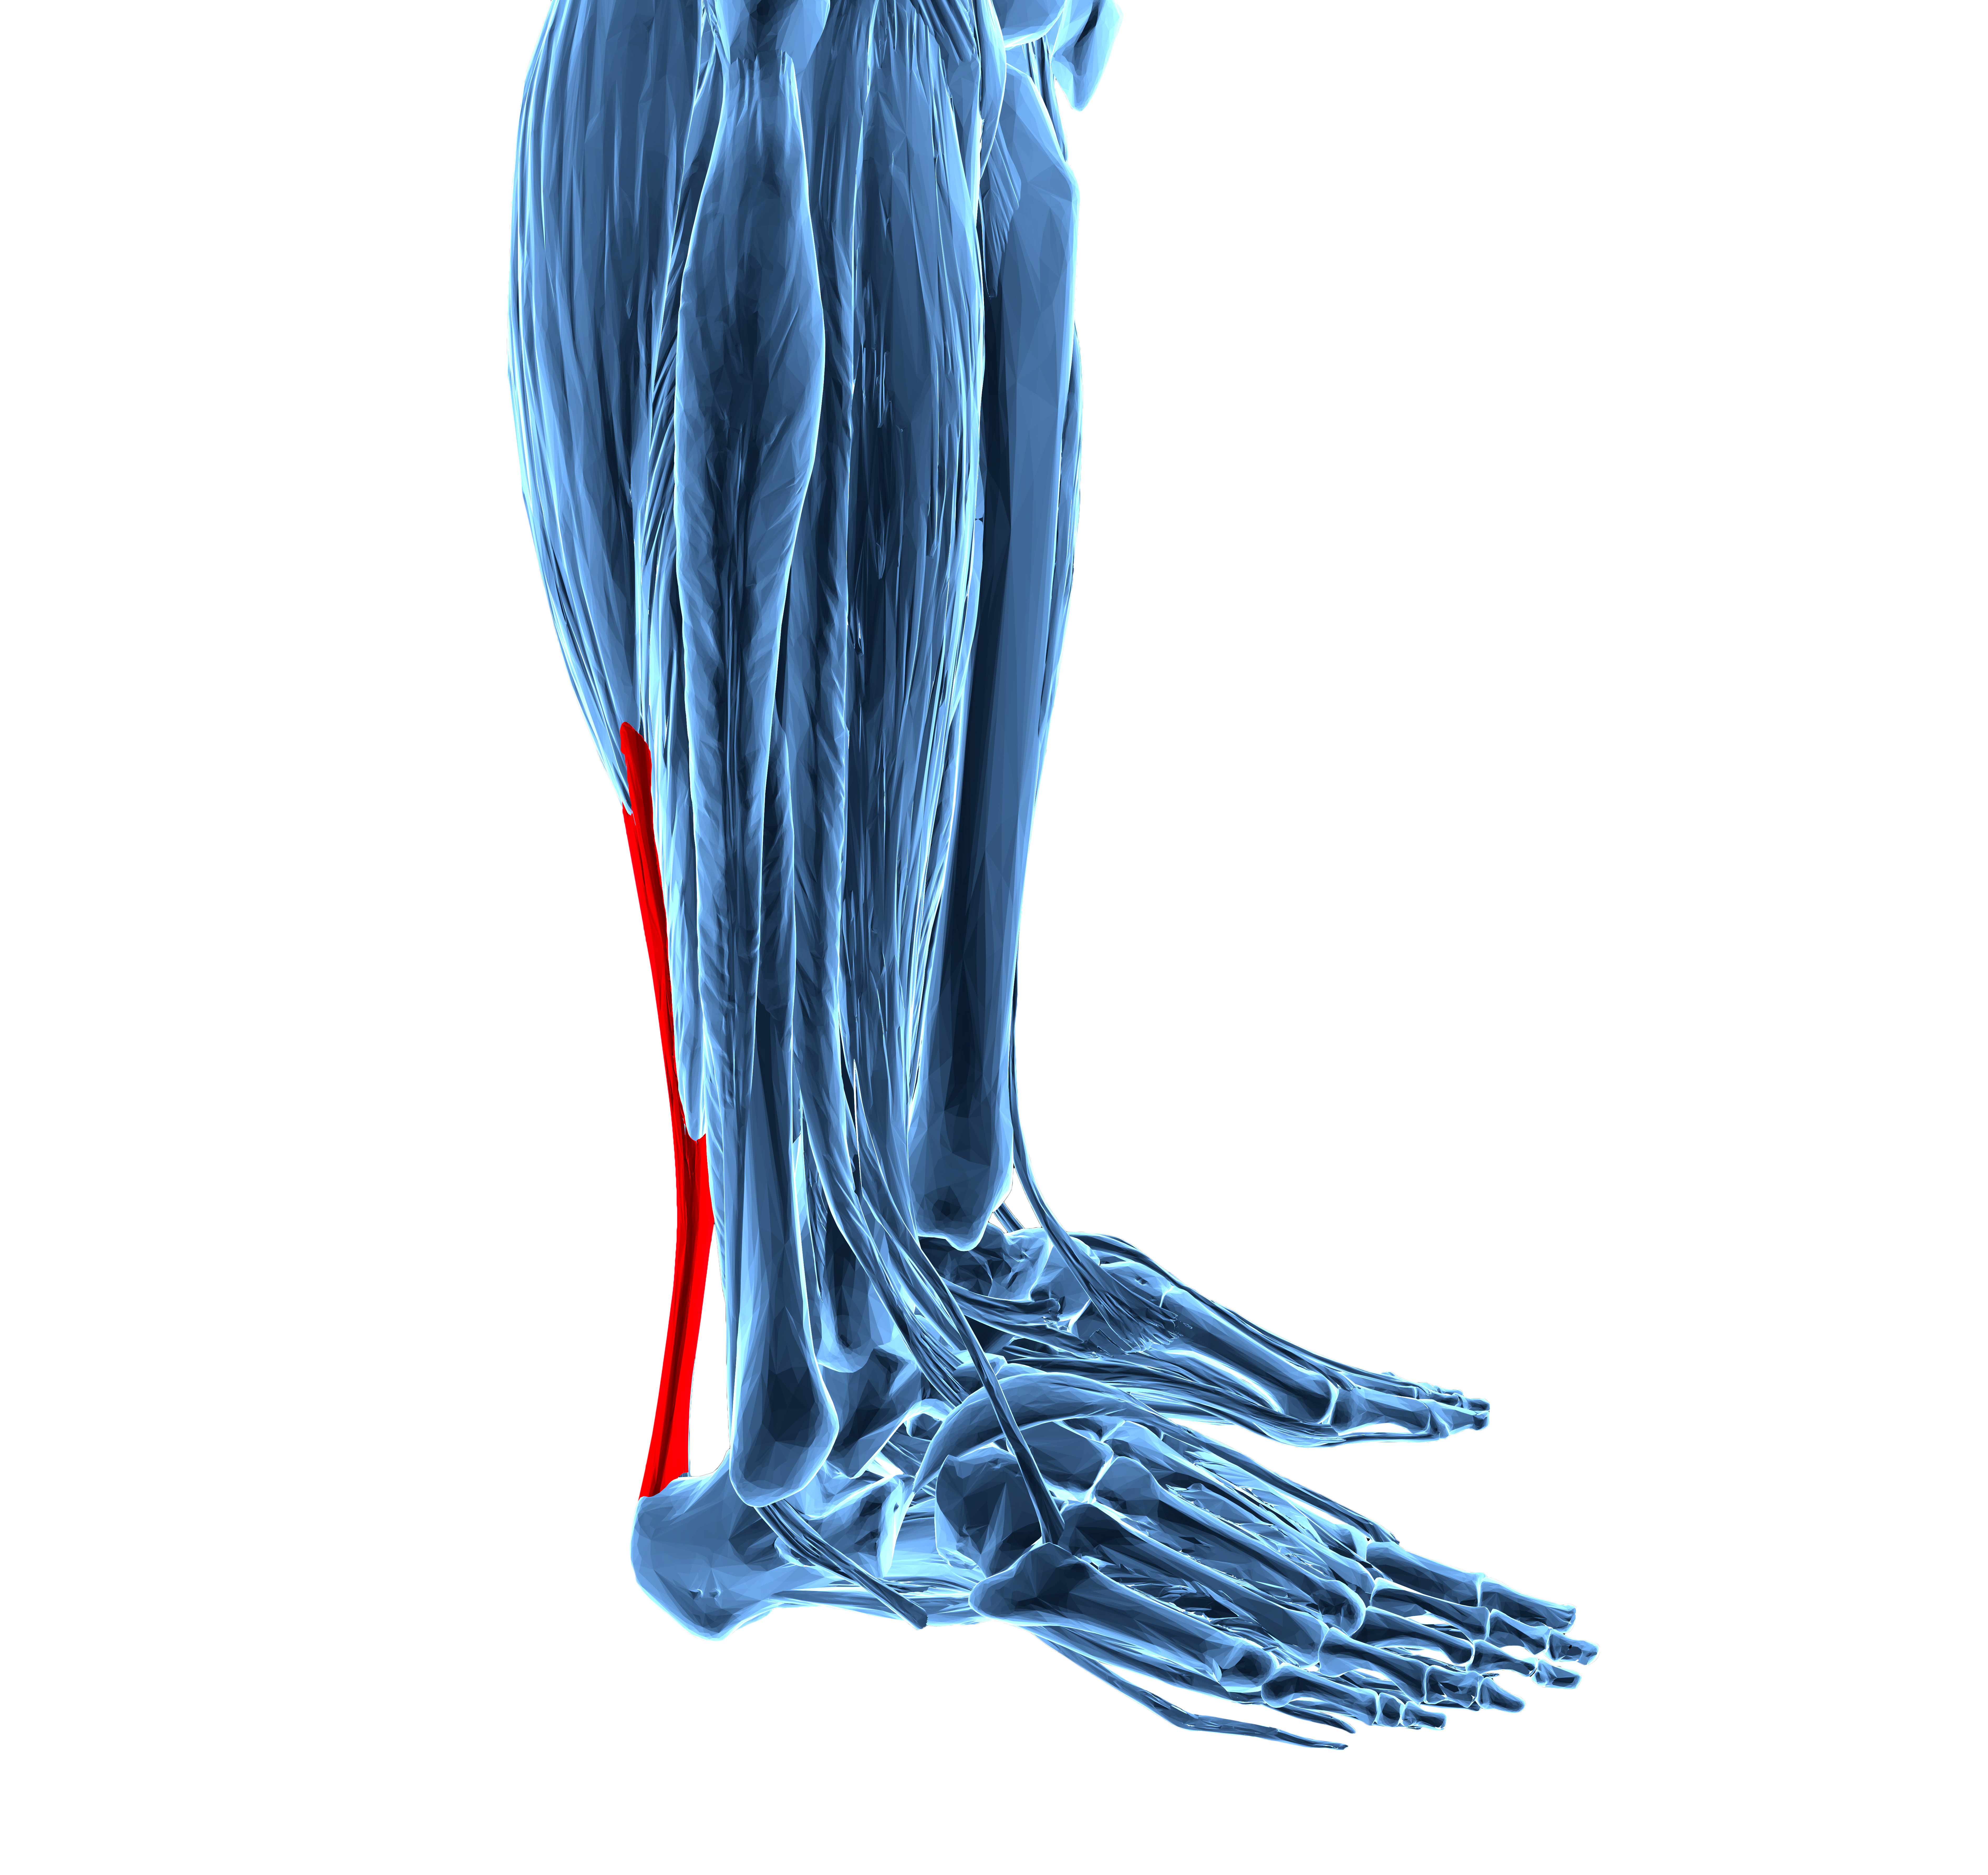 achilles tendon Find achilles tendon stock images in hd and millions of other royalty-free stock photos, illustrations, and vectors in the shutterstock collection thousands of new.